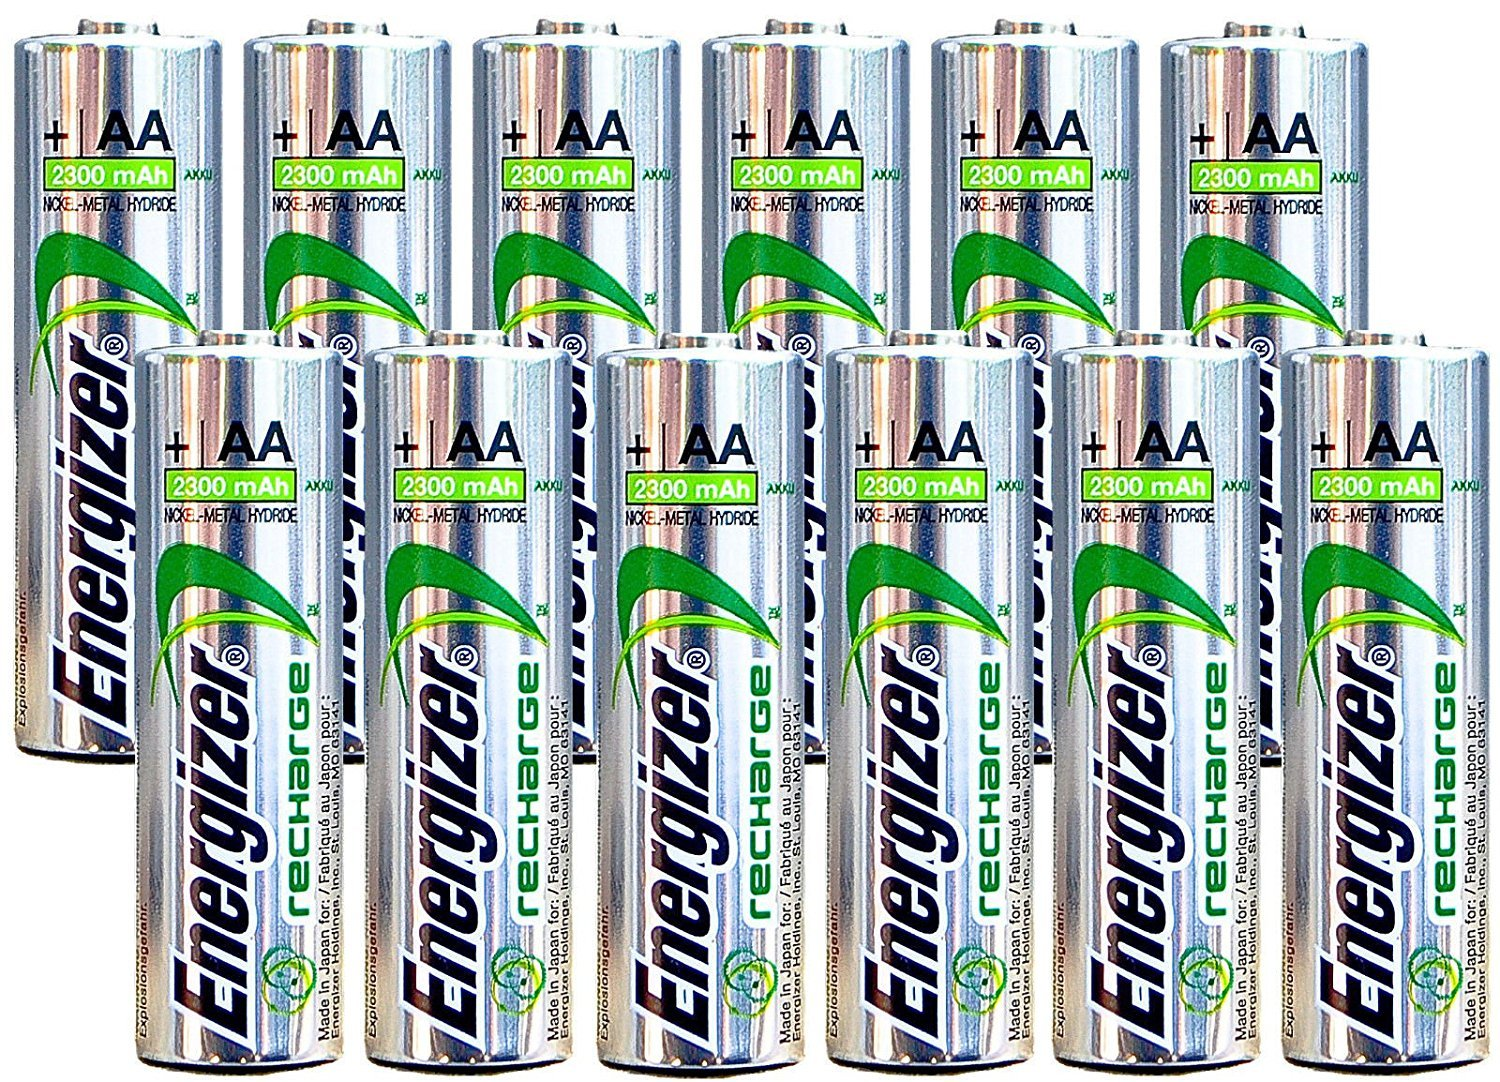 Energizer AA Rechargeable batteries NiMH 2300 mAh 1.2V NH15 - 12 Count by Energizer Batteries (Image #1)